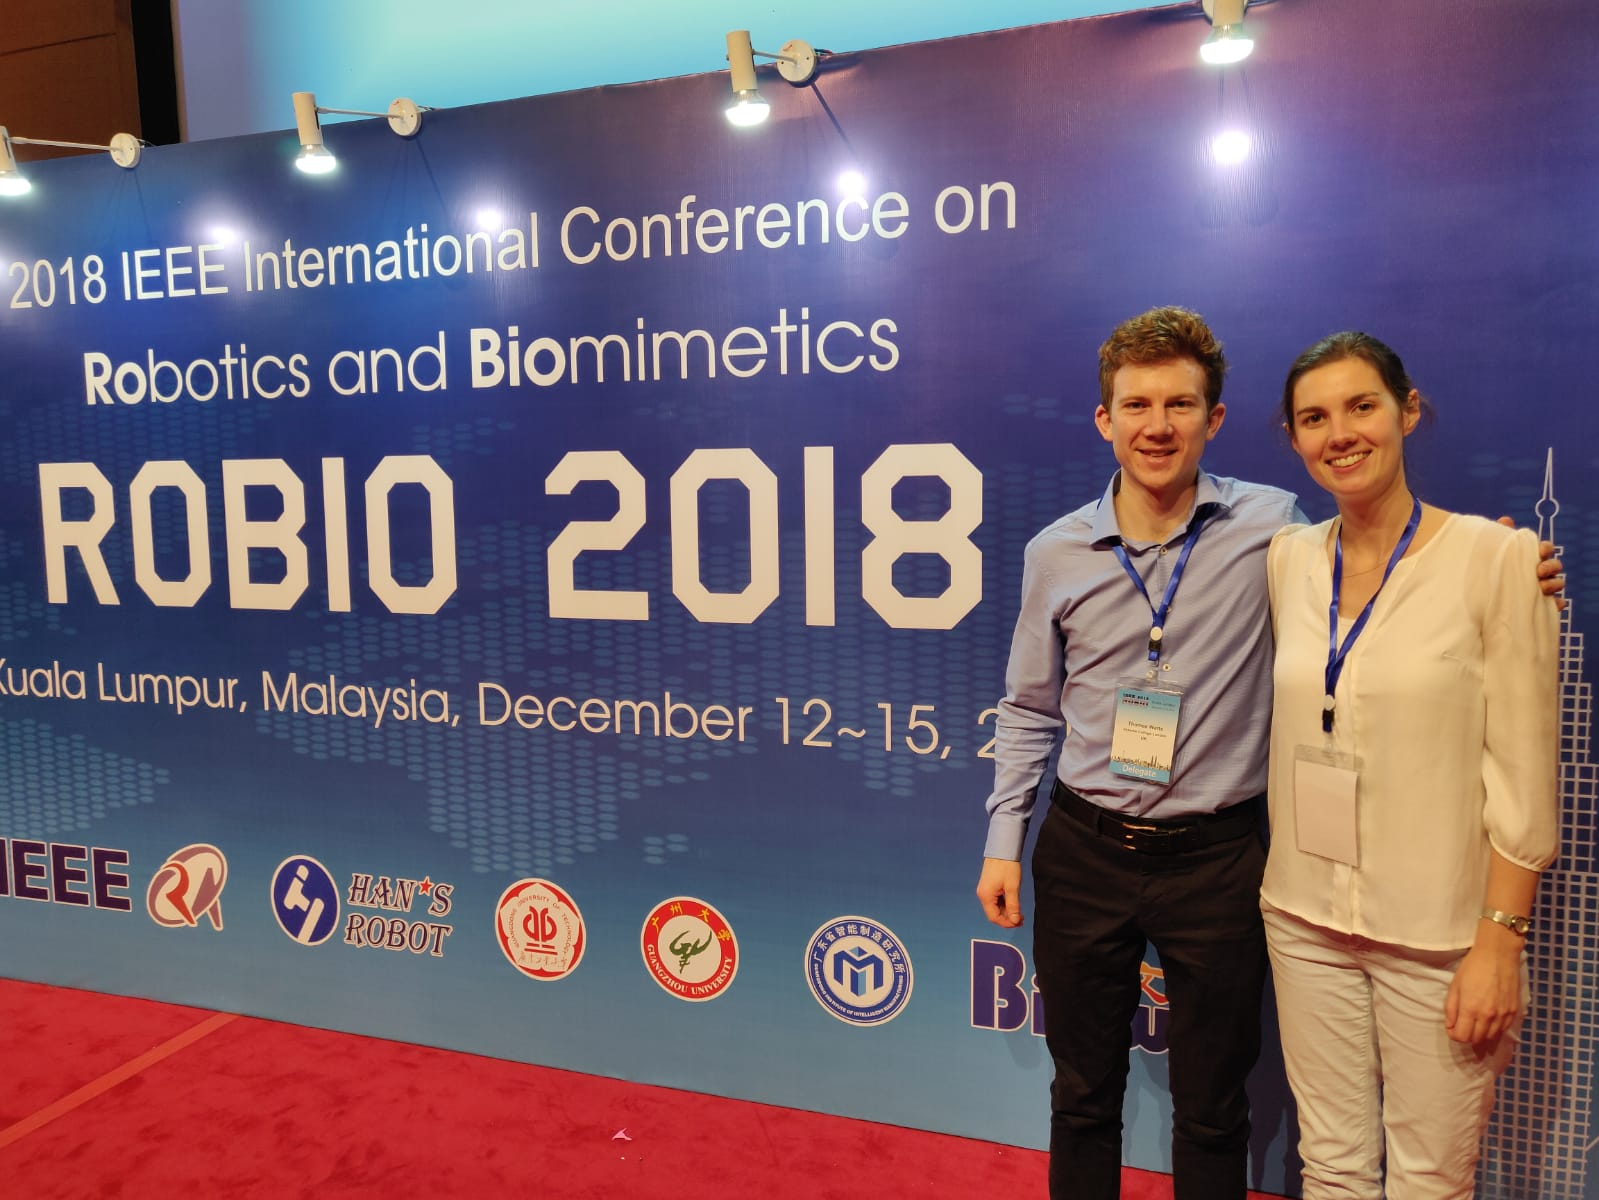 tom and eloise in front of ROBIO 2018 banner